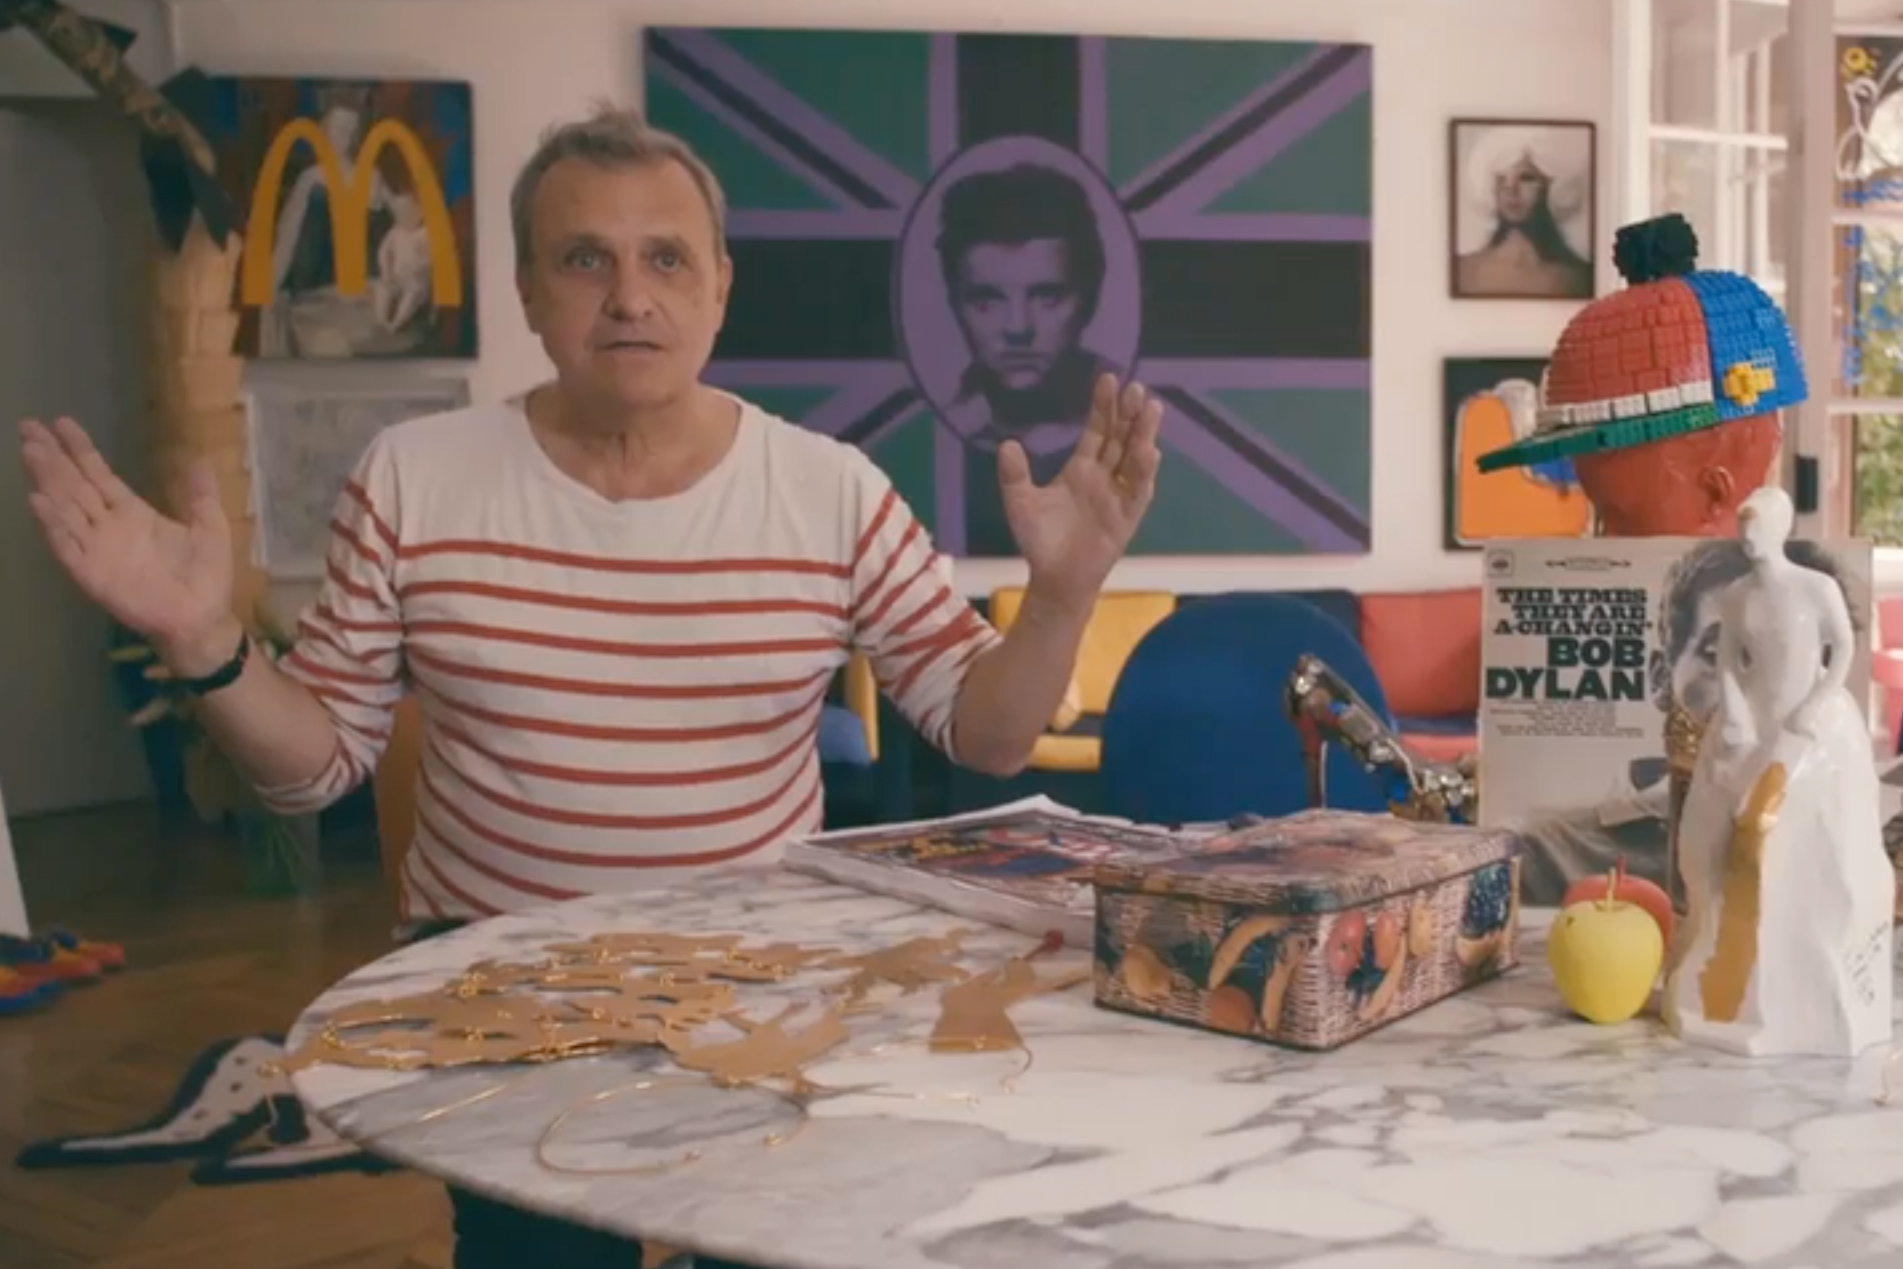 Take a Look Inside Jean-Charles De Castelbajac's Apartment